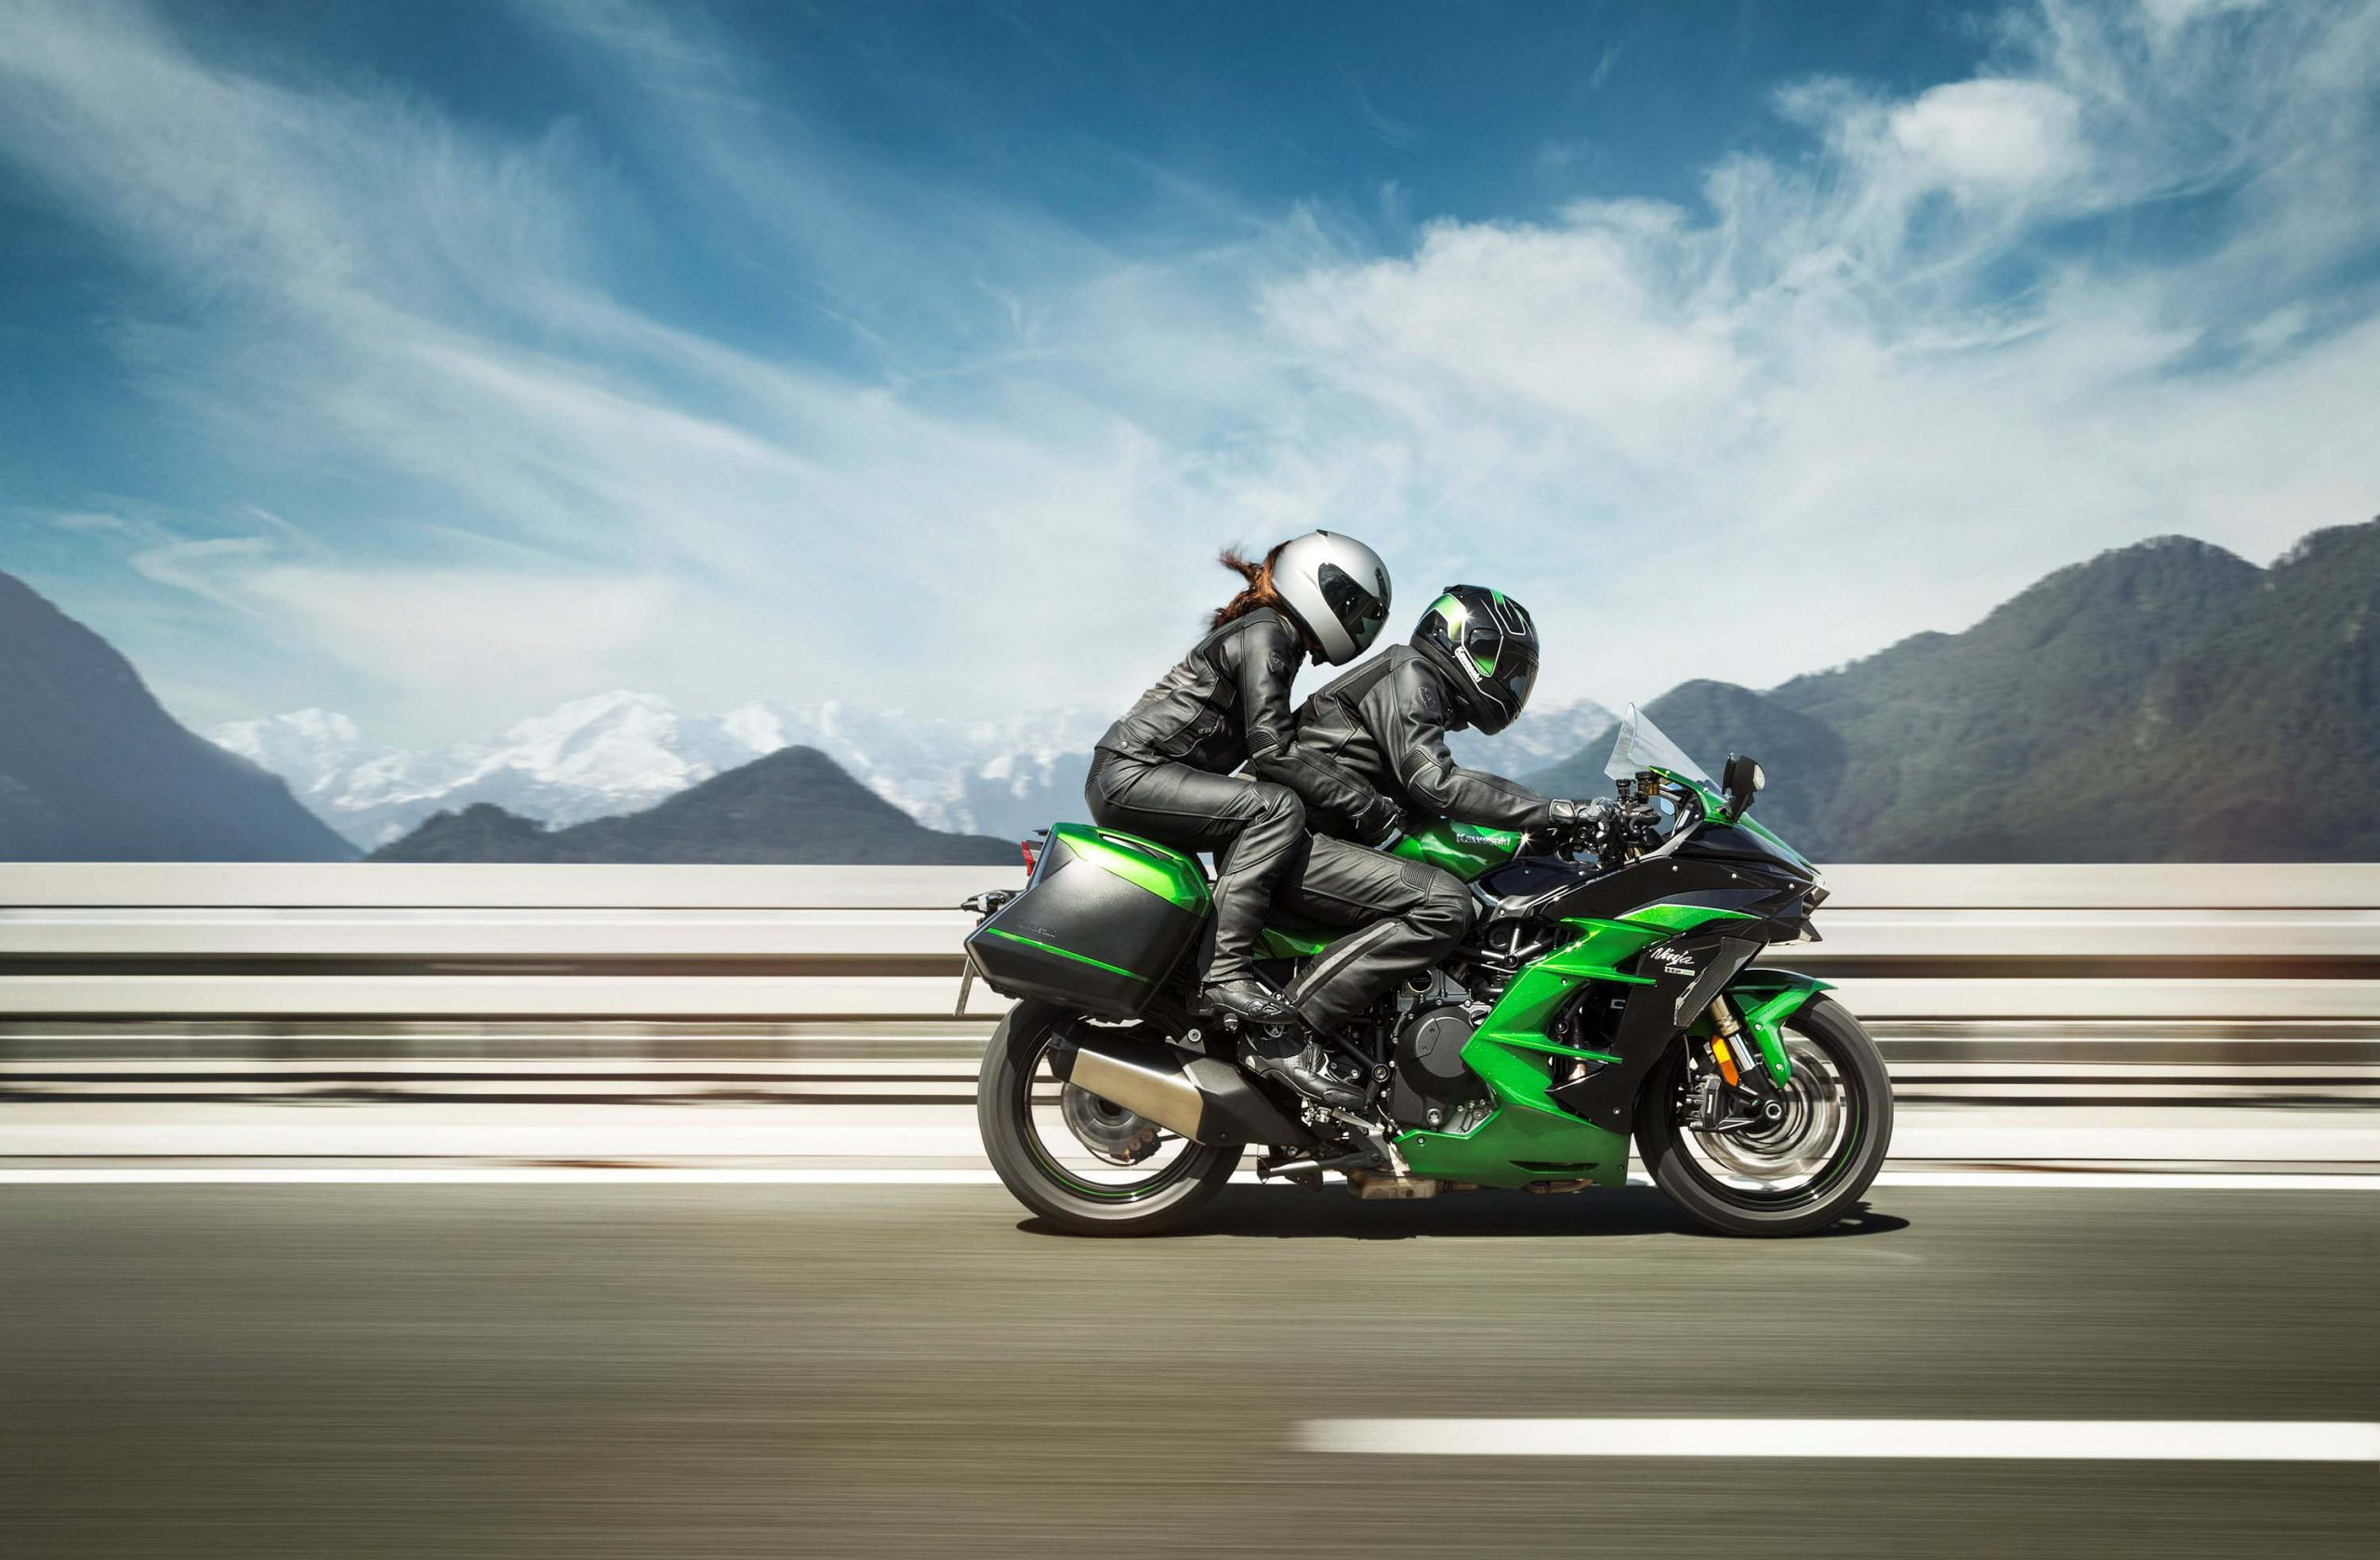 Kawasaki Ninja H2 SX Priced at $19,000 for the USA - Asphalt & Rubber